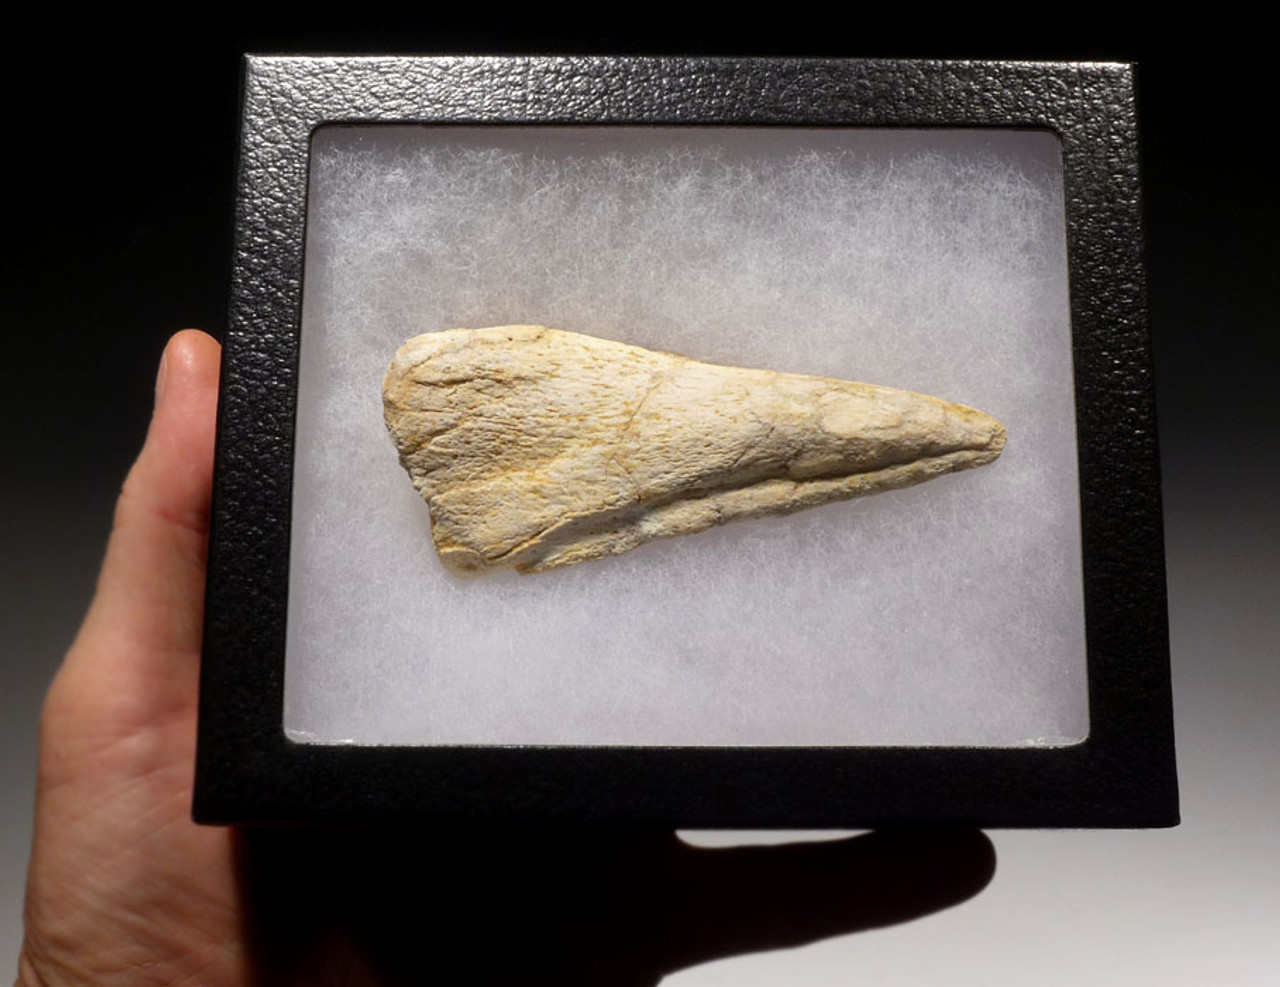 DCX007 - LARGE COMPLETE SPINOSAURUS FOSSIL DINOSAUR TOE CLAW IN RARE WHITE COLOR